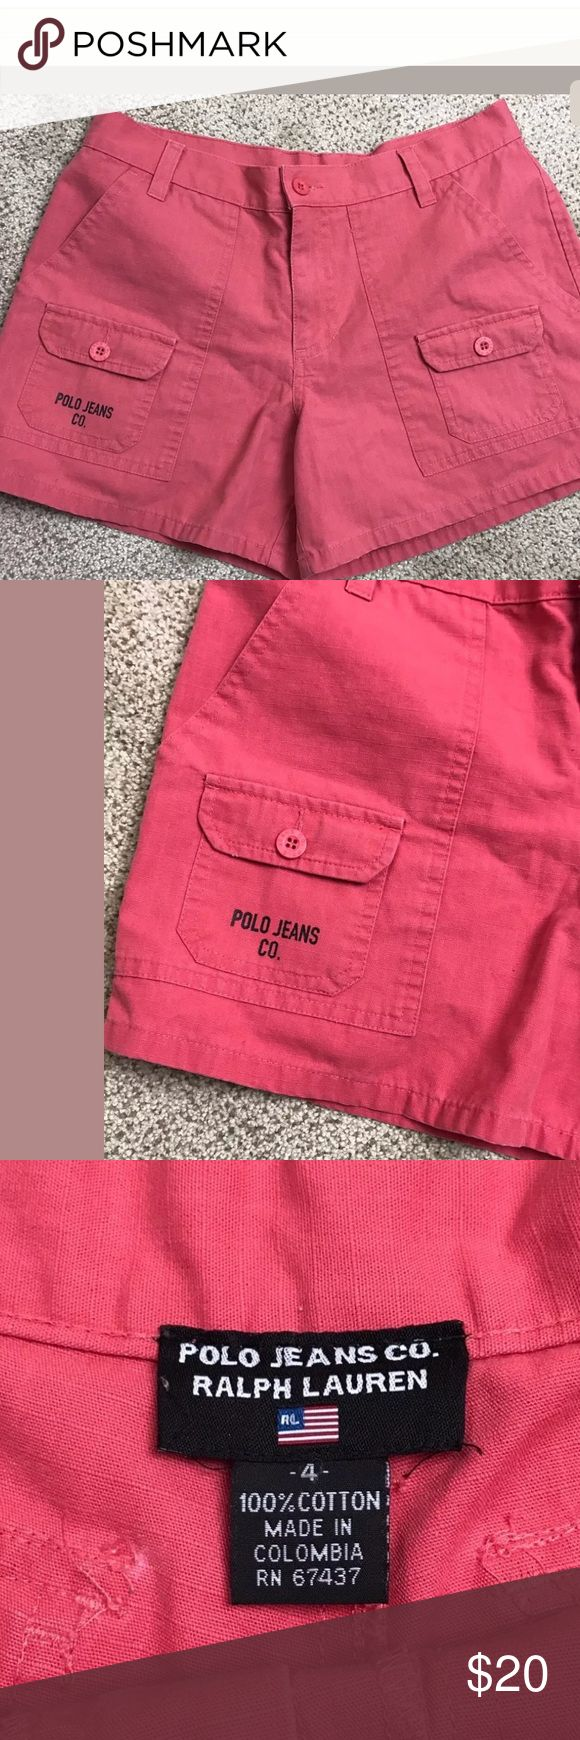 Polo Jeans  Ralph Lauren Women's Pink Cargo Shorts Polo Jeans  Ralph Lauren Women's Pink Cargo Shorts SZ 4    CONDITION: Pre Owned , Excellent Used Condition MEASUREMENTS are Approximate, laying flat & not stretched.  12 inches outseam 28 In Waist Polo by Ralph Lauren Shorts